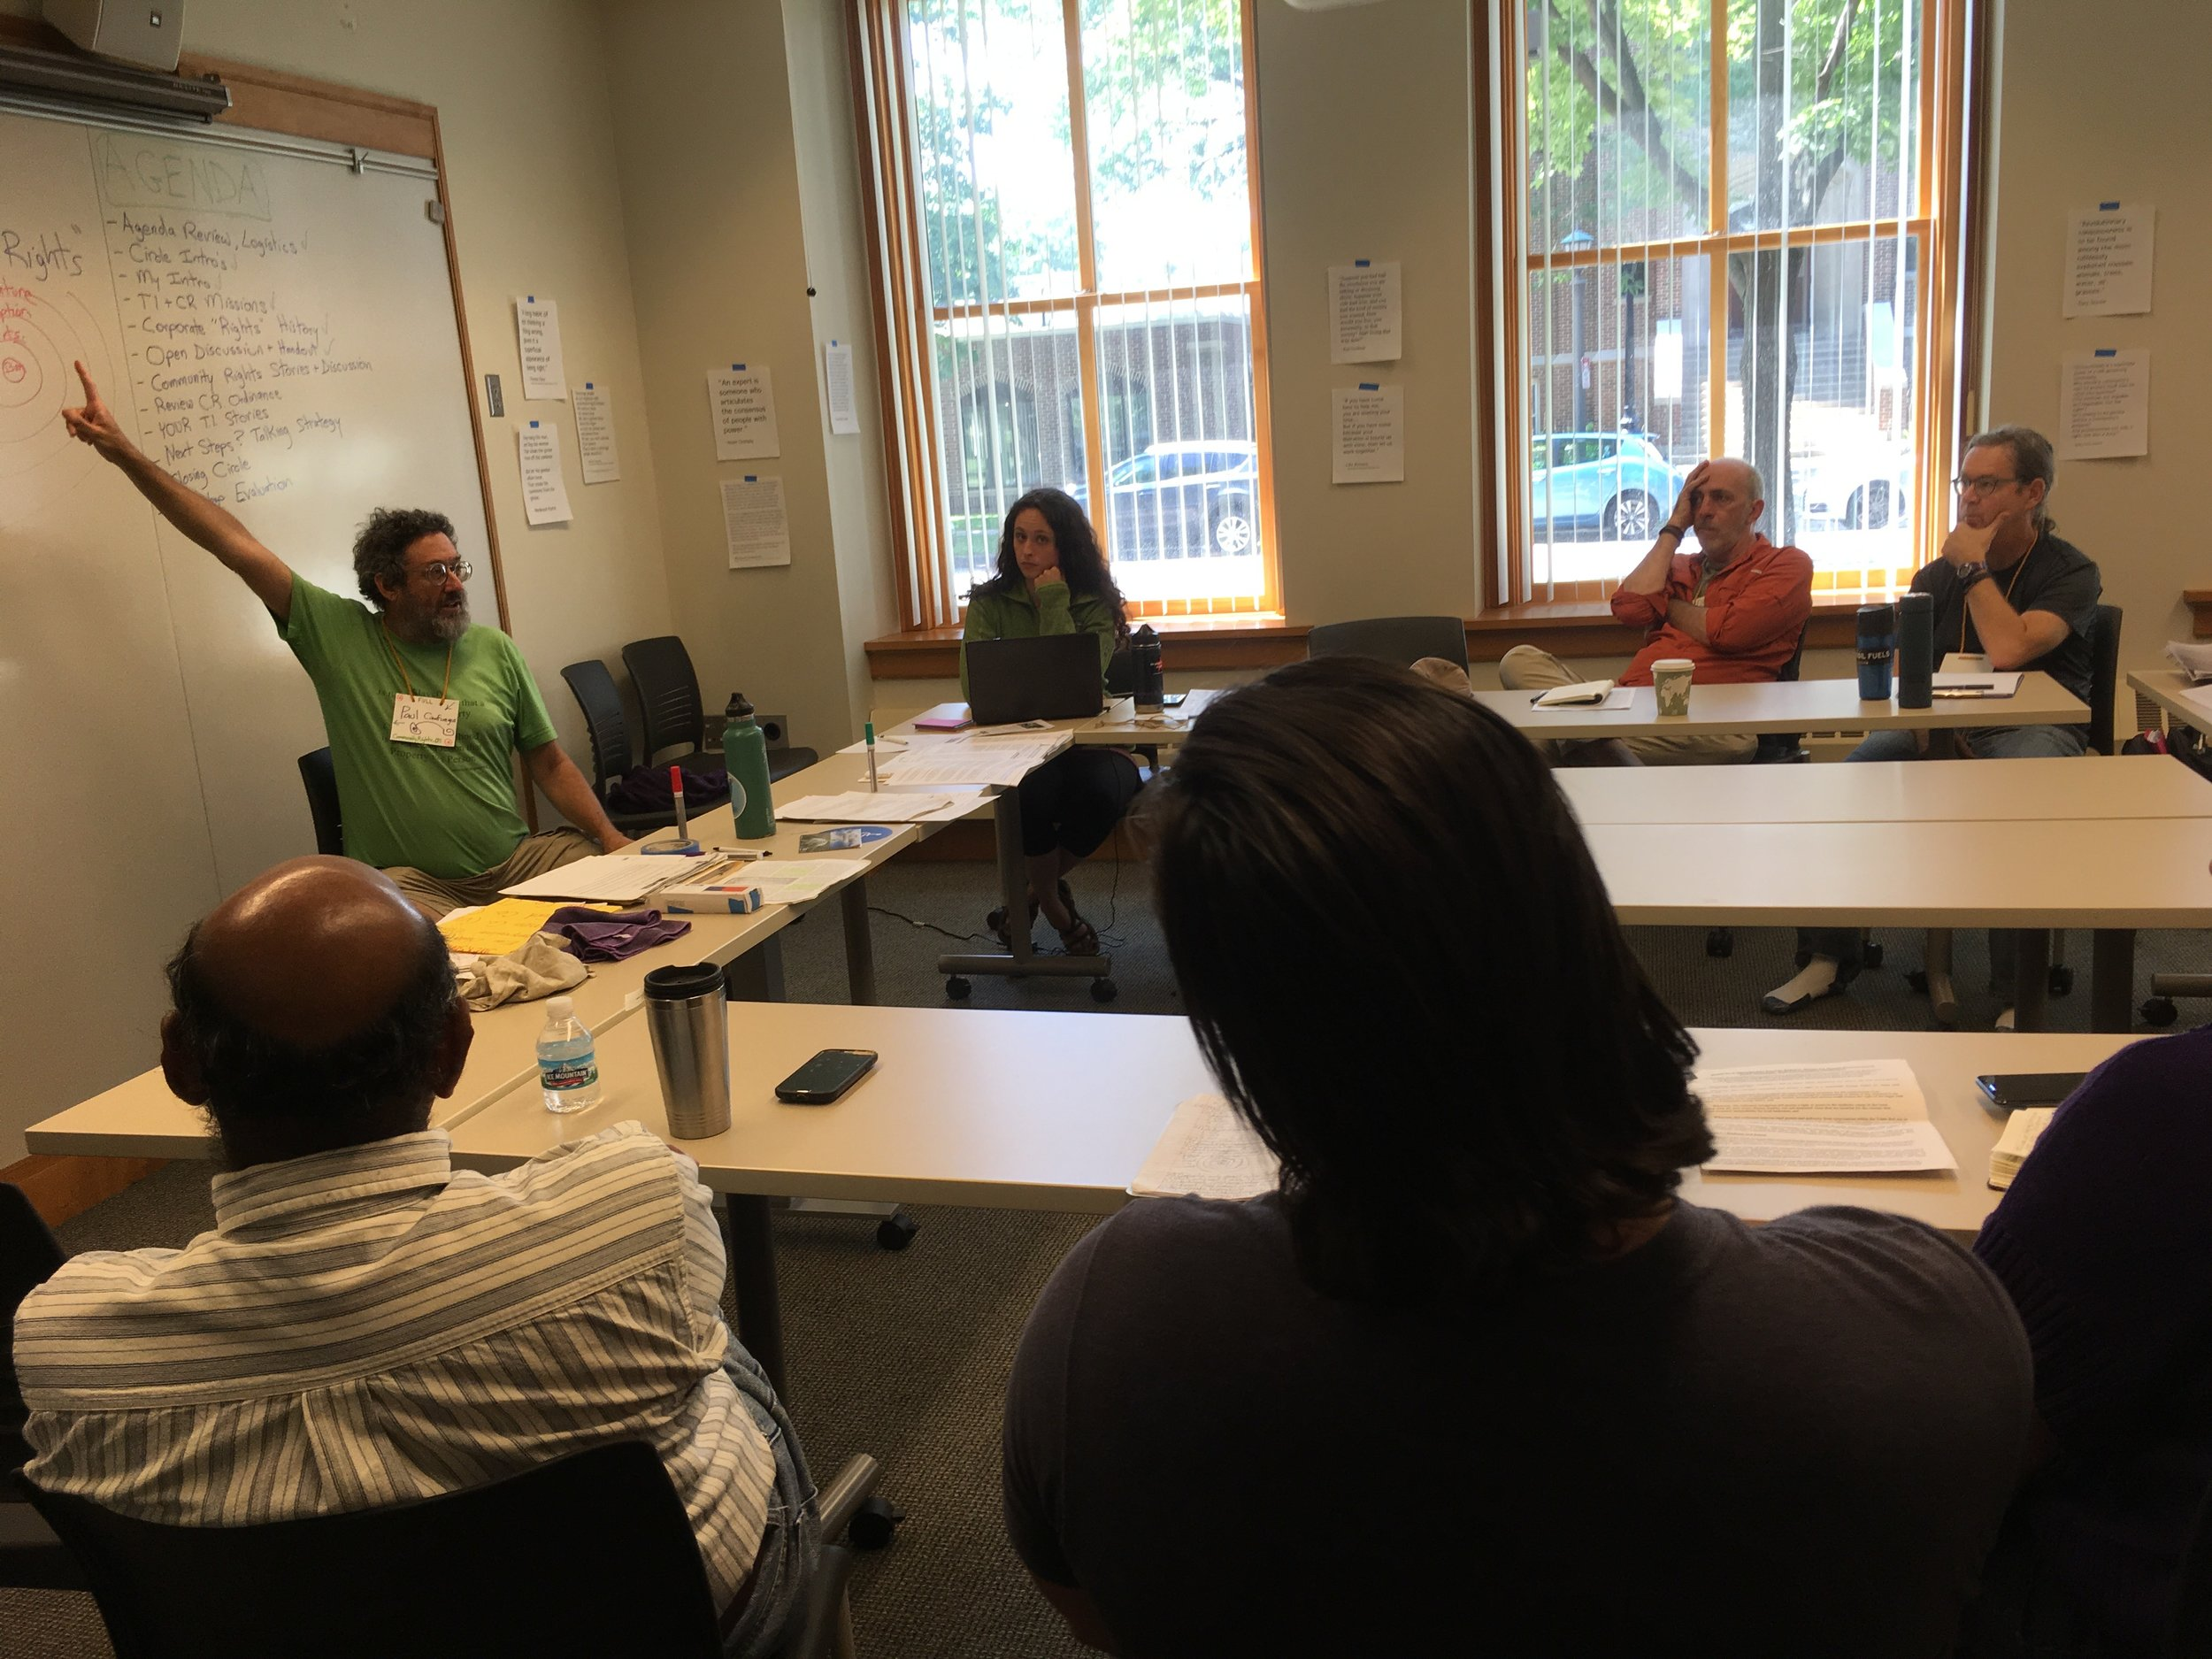 """Paul Cienfuegos of Community Rights US leads a one-day intensive on """"Community Rights: We the People Are More Powerful Than We Dare to Believe."""" Photo by Nils Palsson."""